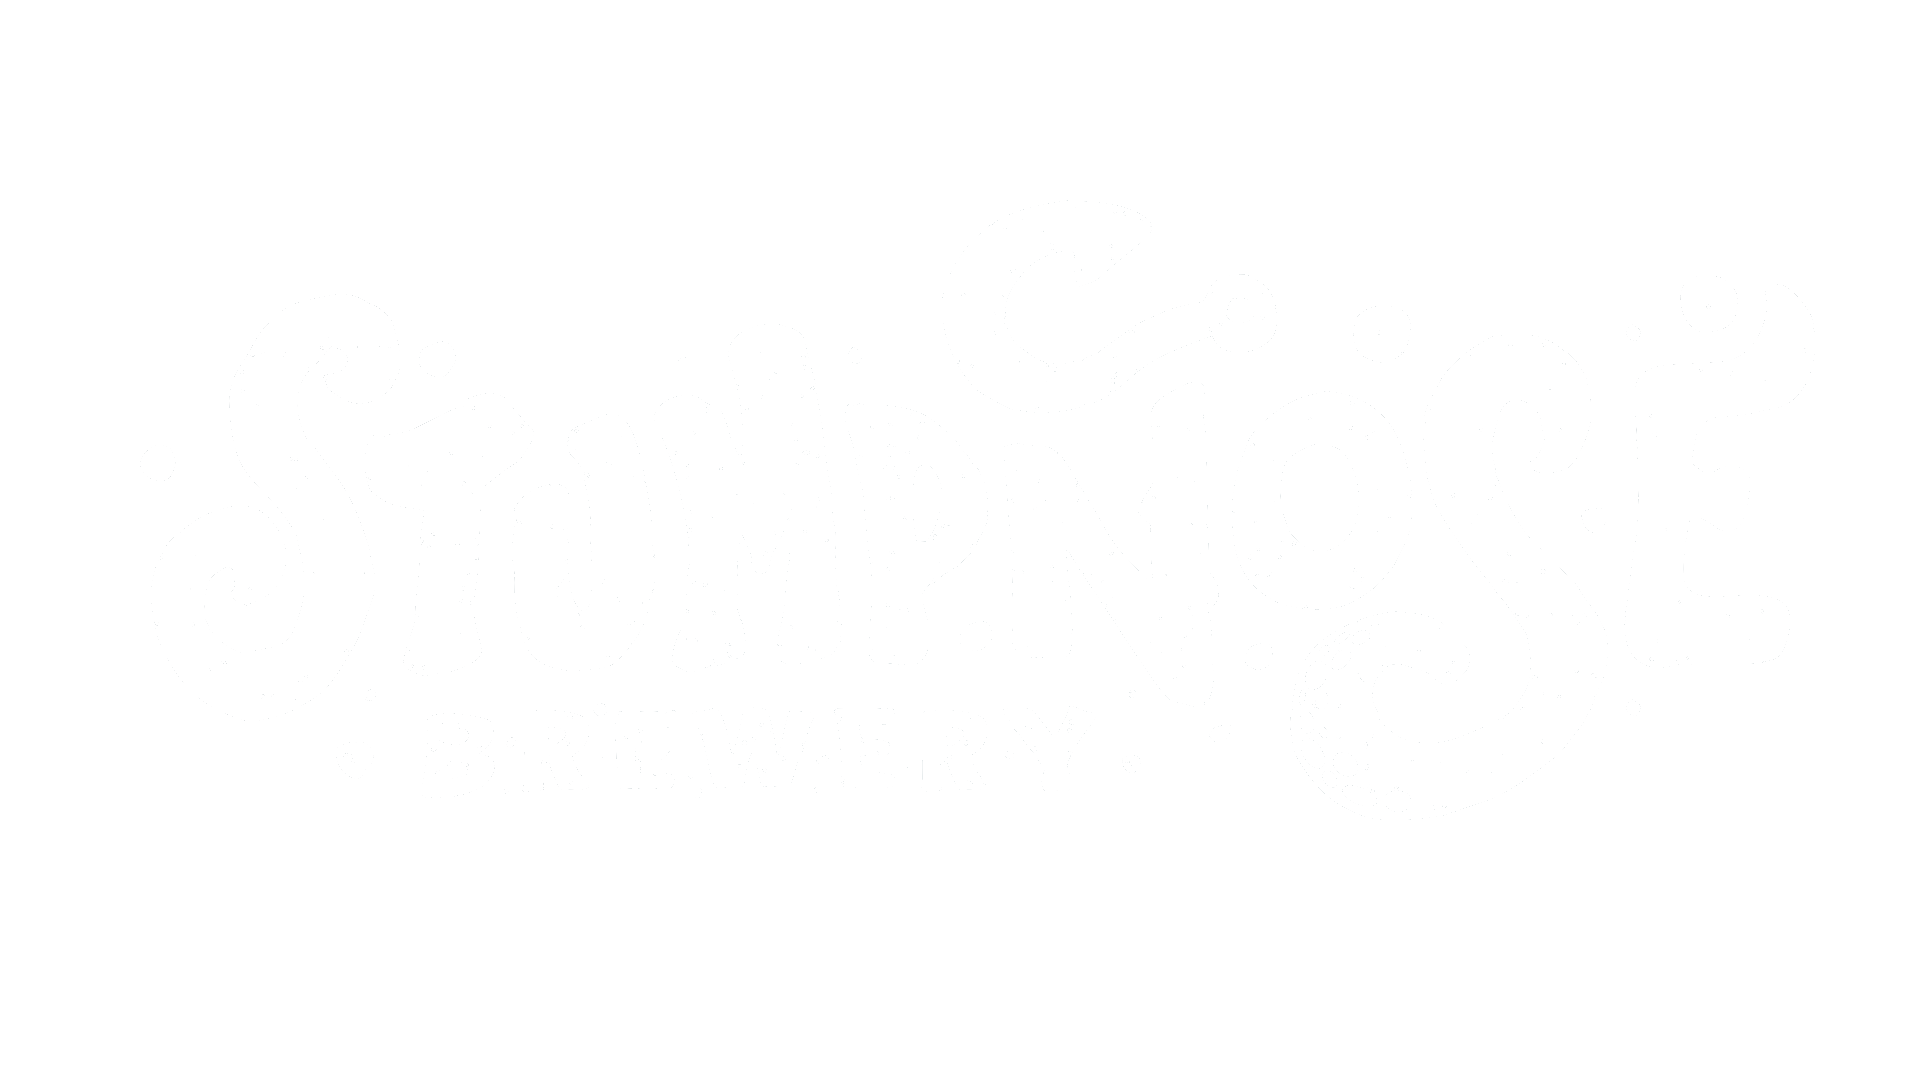 Stumpnose Brewery & Taproom